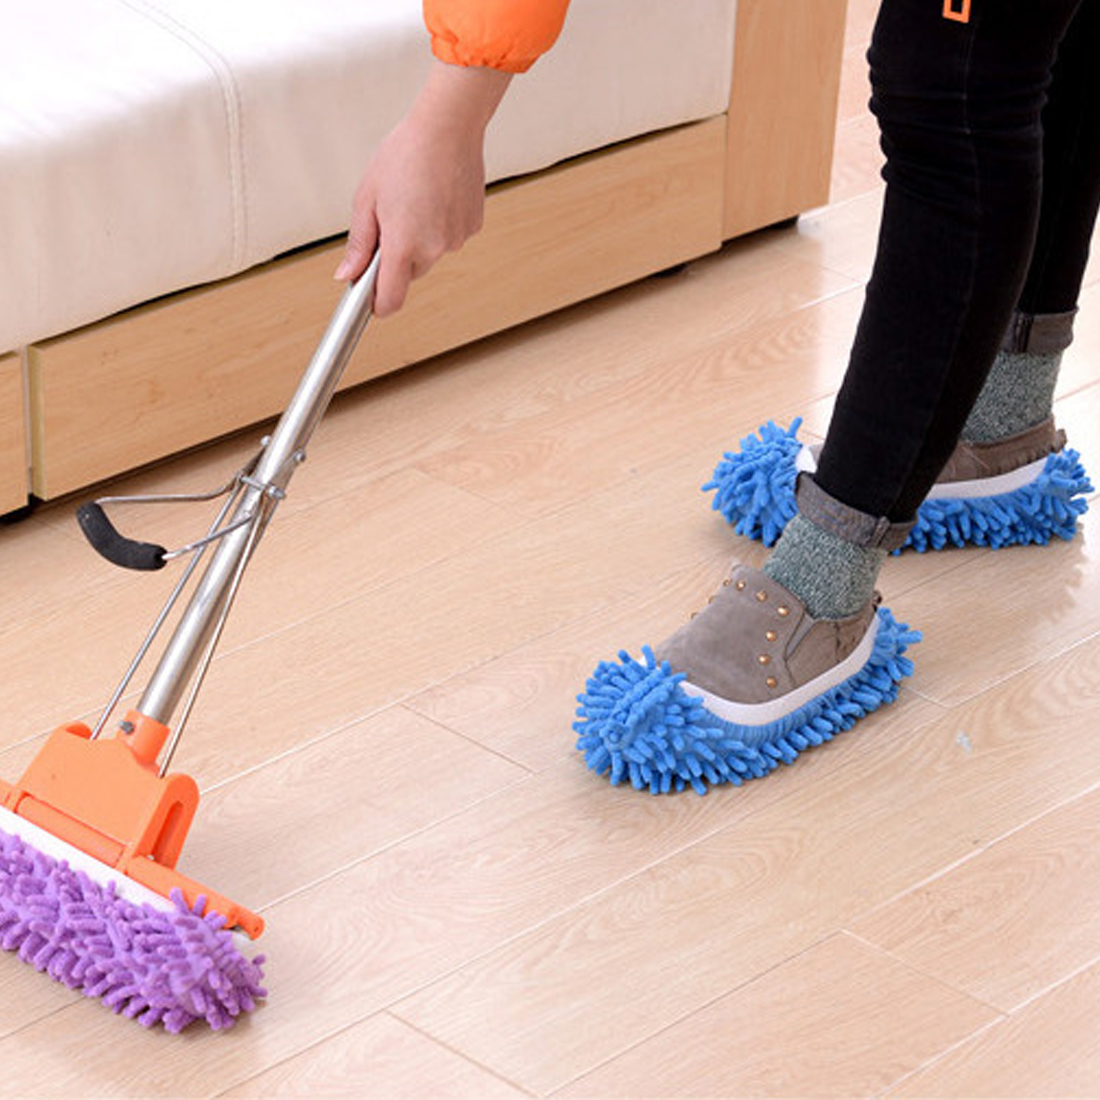 or office washing watch home floors for floor would like you cleaner cleaning mop